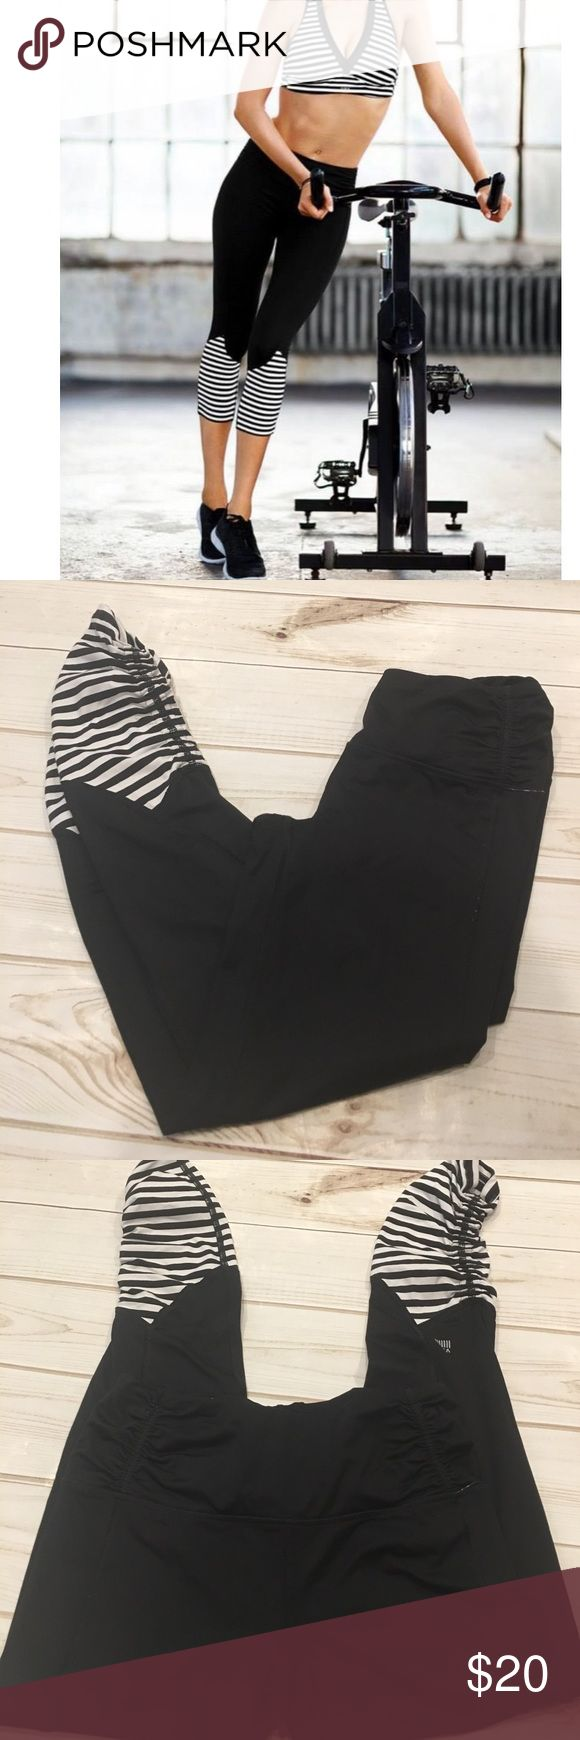 """🆕 Victoria's Secret VSX Sport Leggings Victoria's Secret Sport black showtime tight workout leggings. High rise, ruching on the back, and draw string at the ankle where you can cinch to shorten the length. Black and white stripes on the ankle/calf. Very good used condition. Inseam is 26.5"""" Victoria's Secret Pants Leggings"""